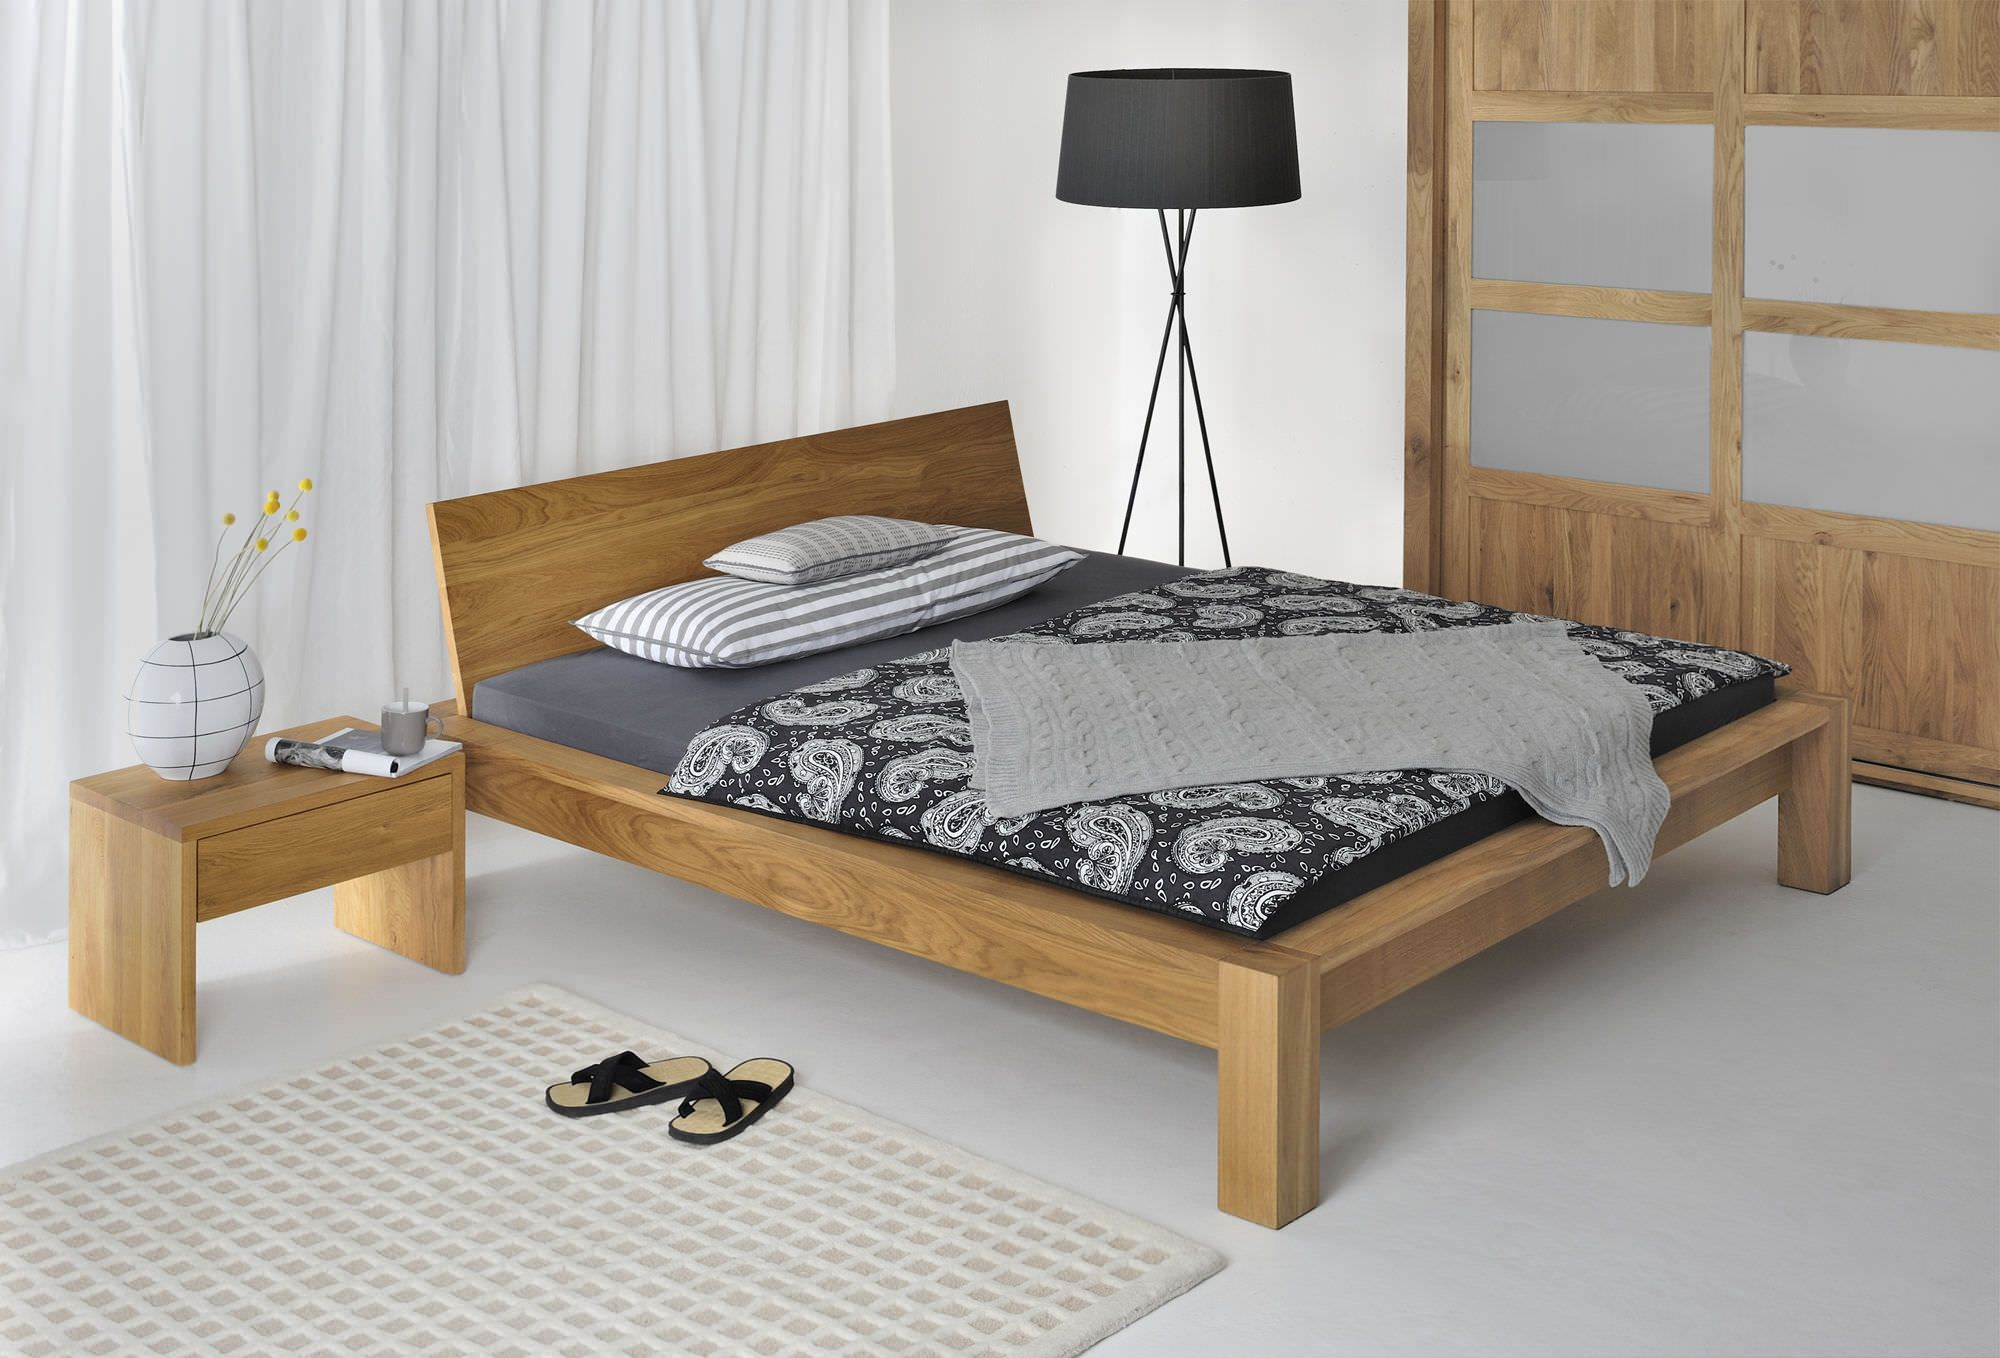 simple double bed designs in wood - HD2000×1358